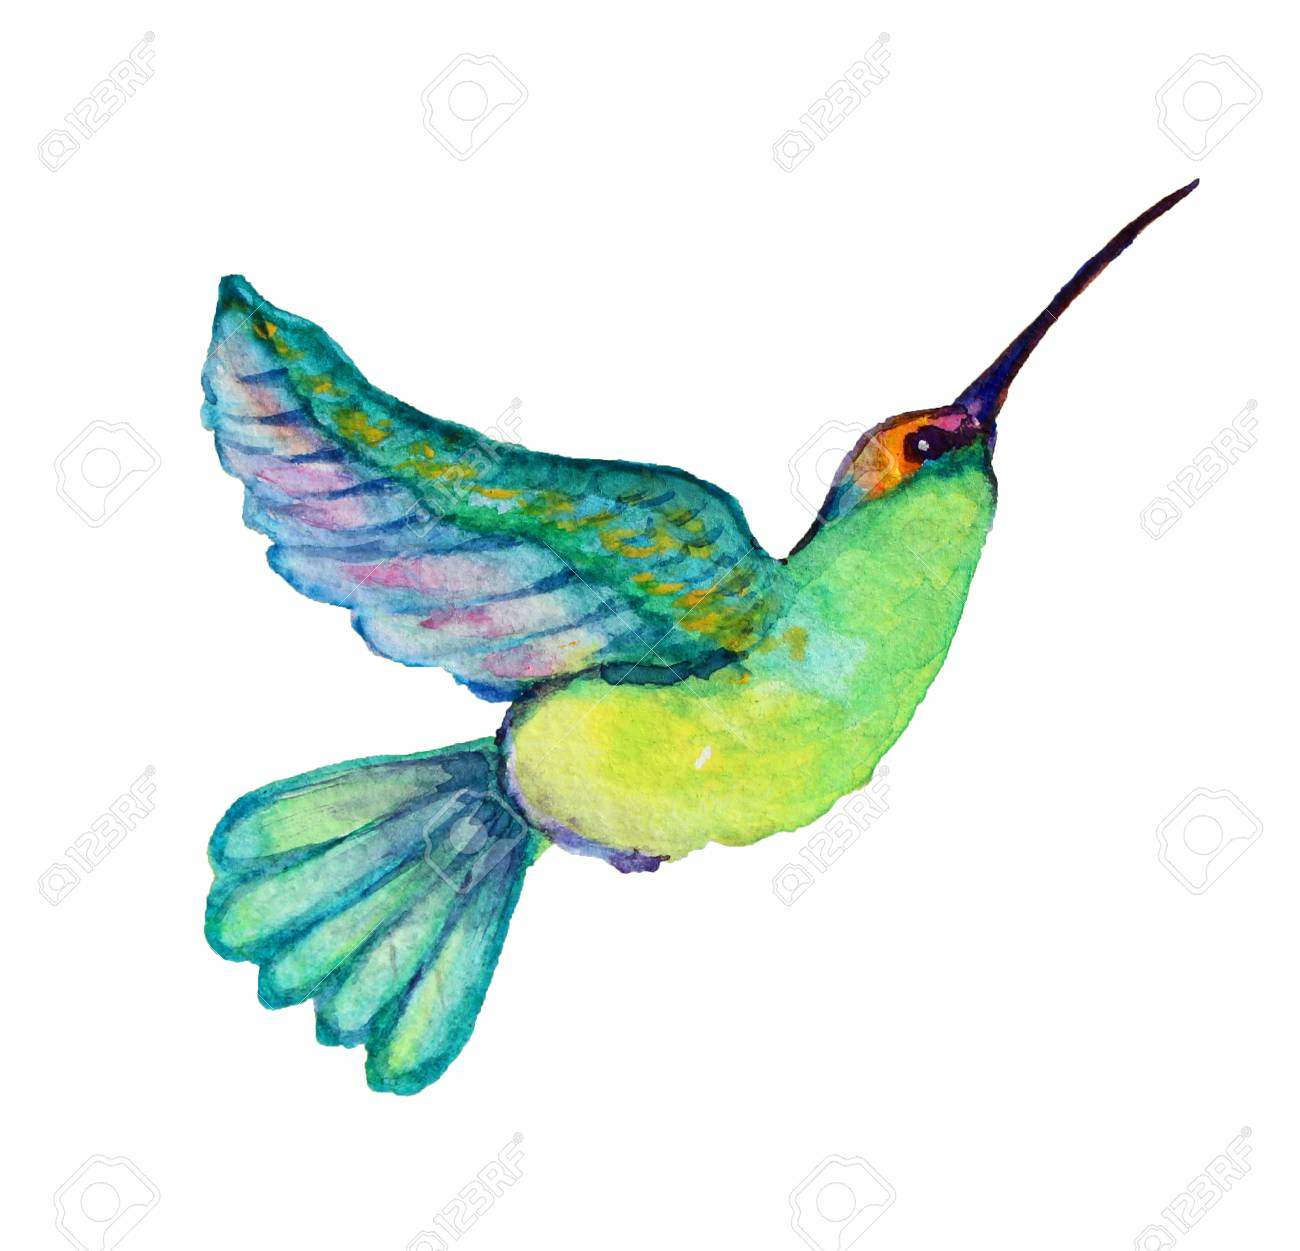 hight resolution of decorative watercolor colibri bird clipart design element can be used for cards invitations